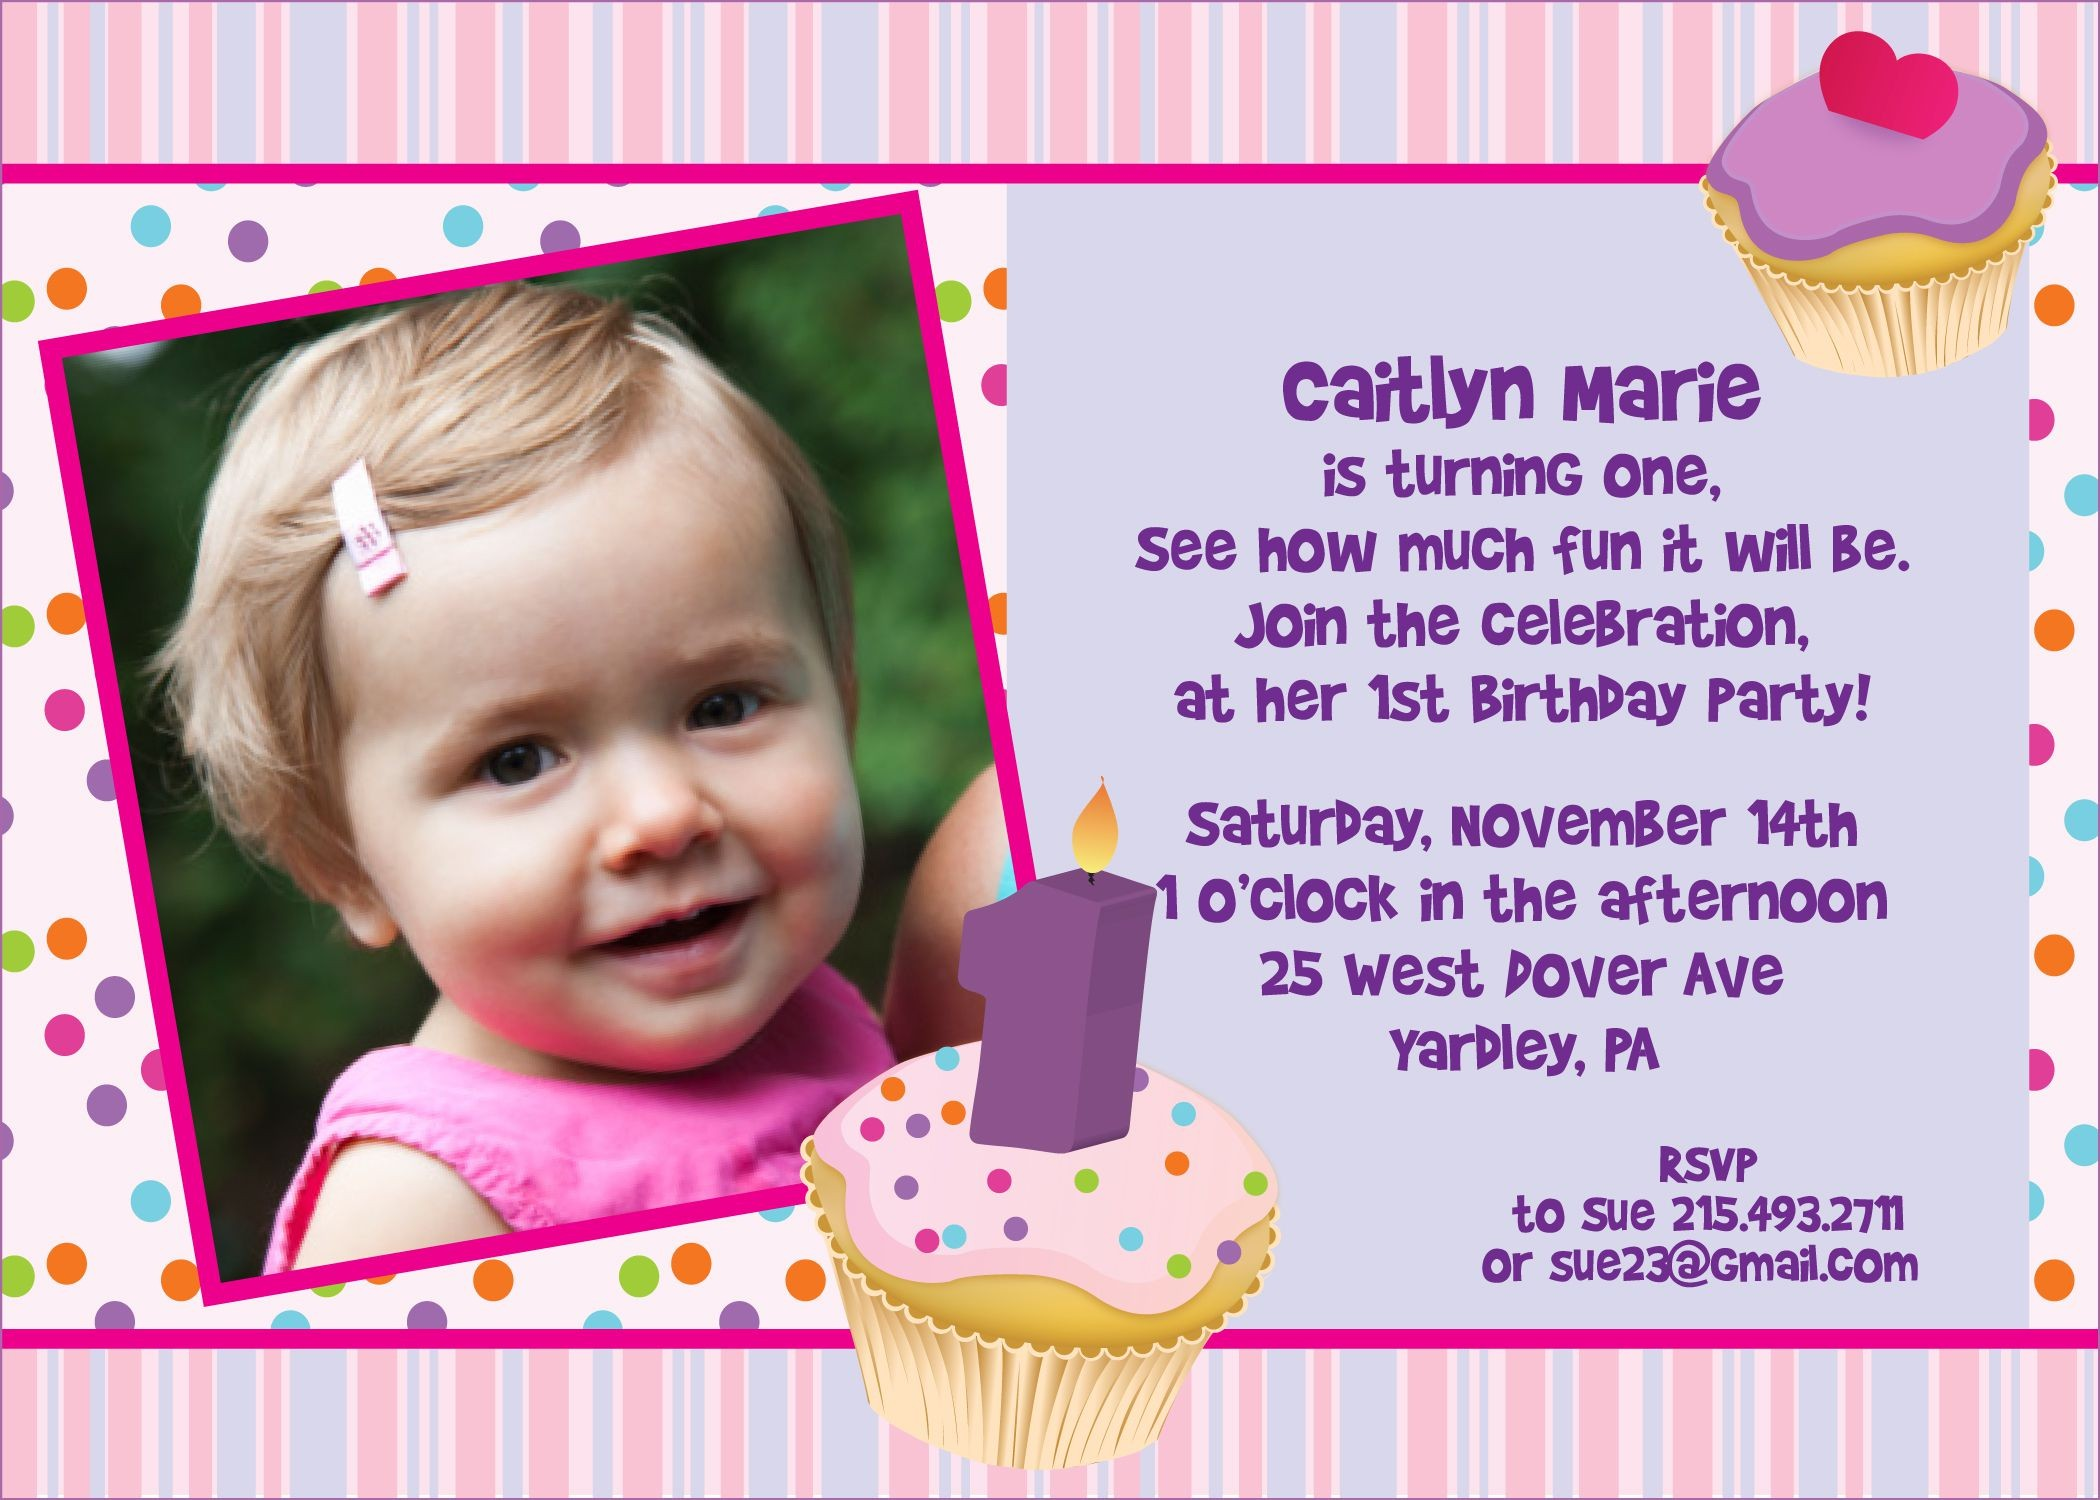 first birthday invitation letter ; sample-invitation-letter-for-first-birthday-fresh-1st-birthday-invitation-message-examples-fresh-new-birthday-card-of-sample-invitation-letter-for-first-birthday